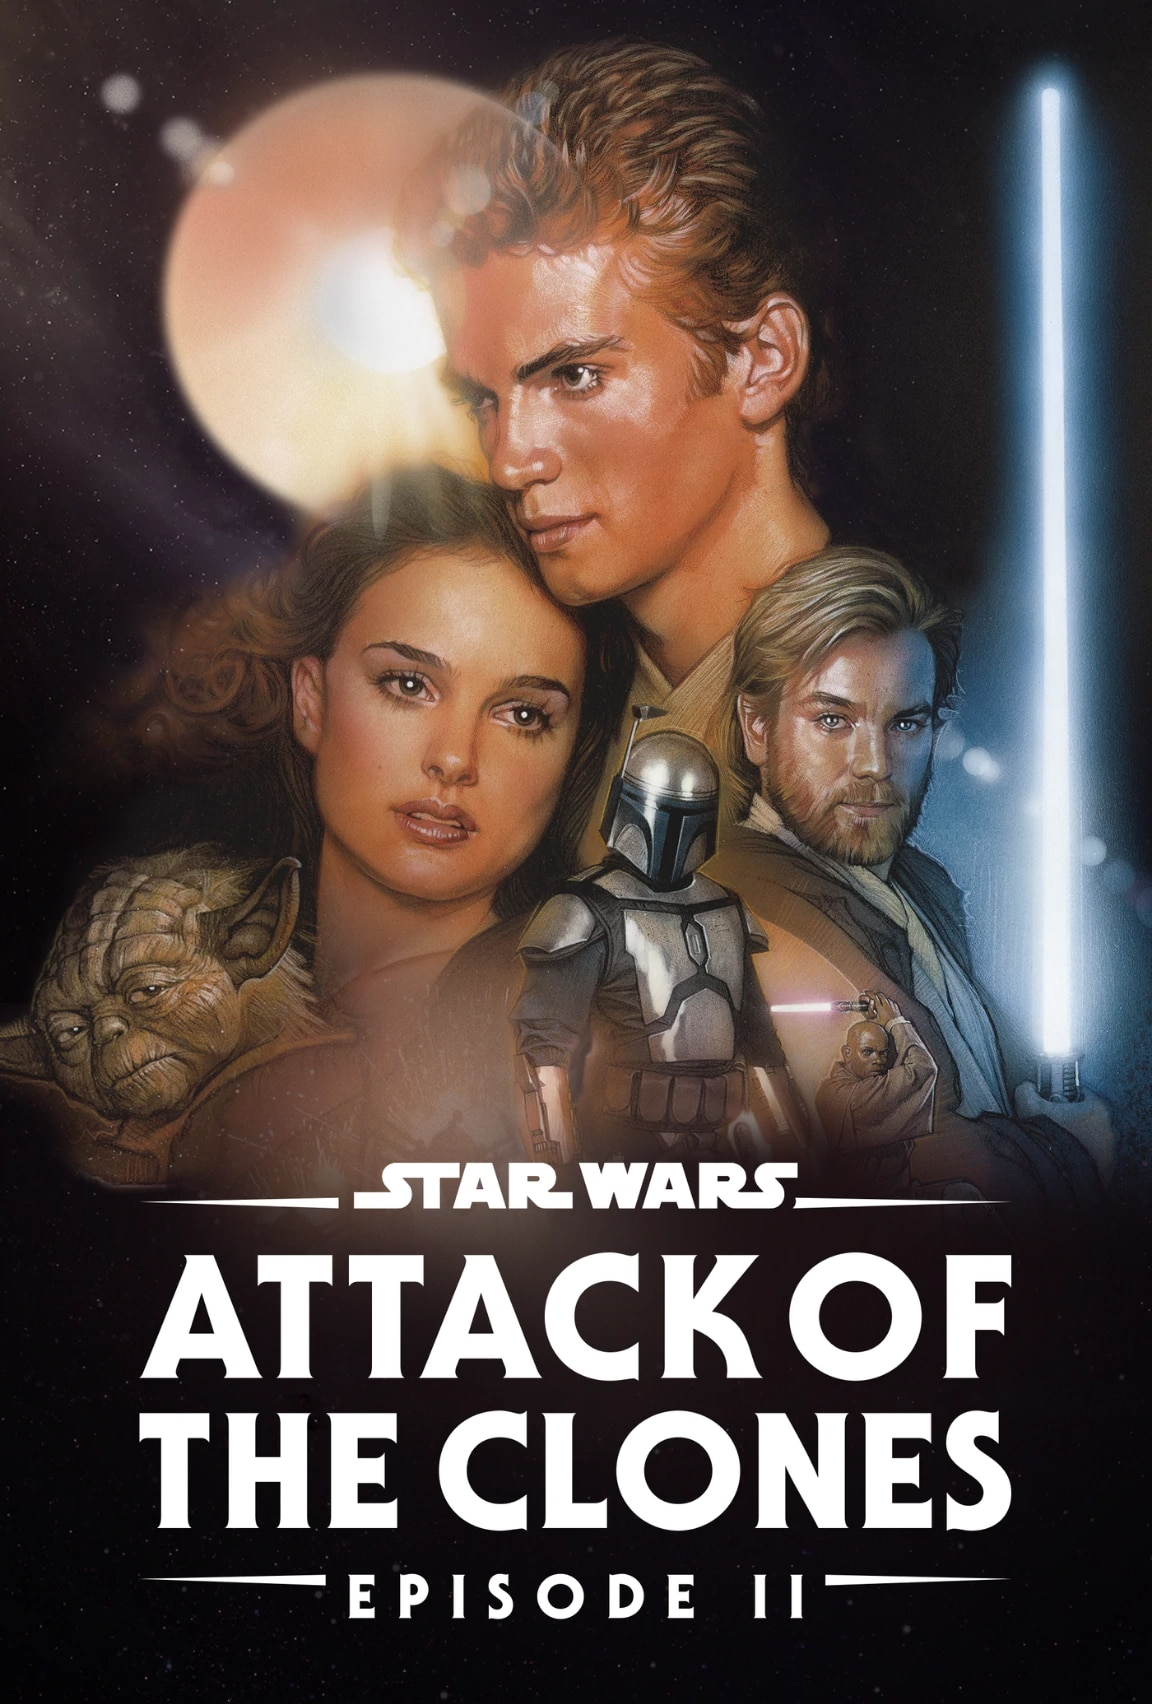 Star Wars: Attack of the Clones (Episode II) poster